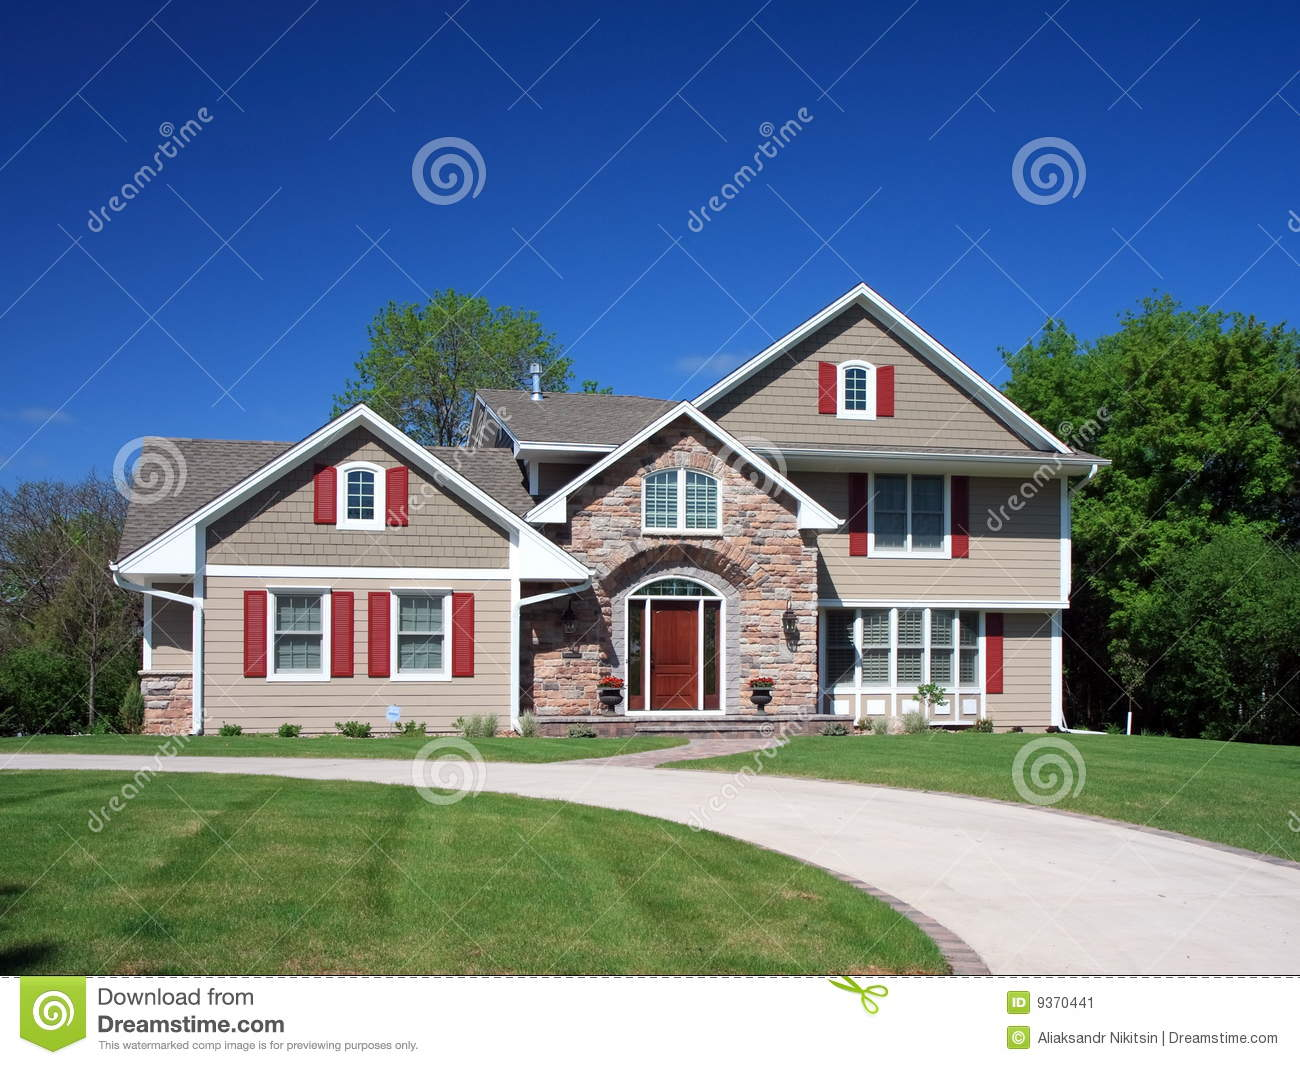 Residential House In Minneapolis Stock Image Image 9370441